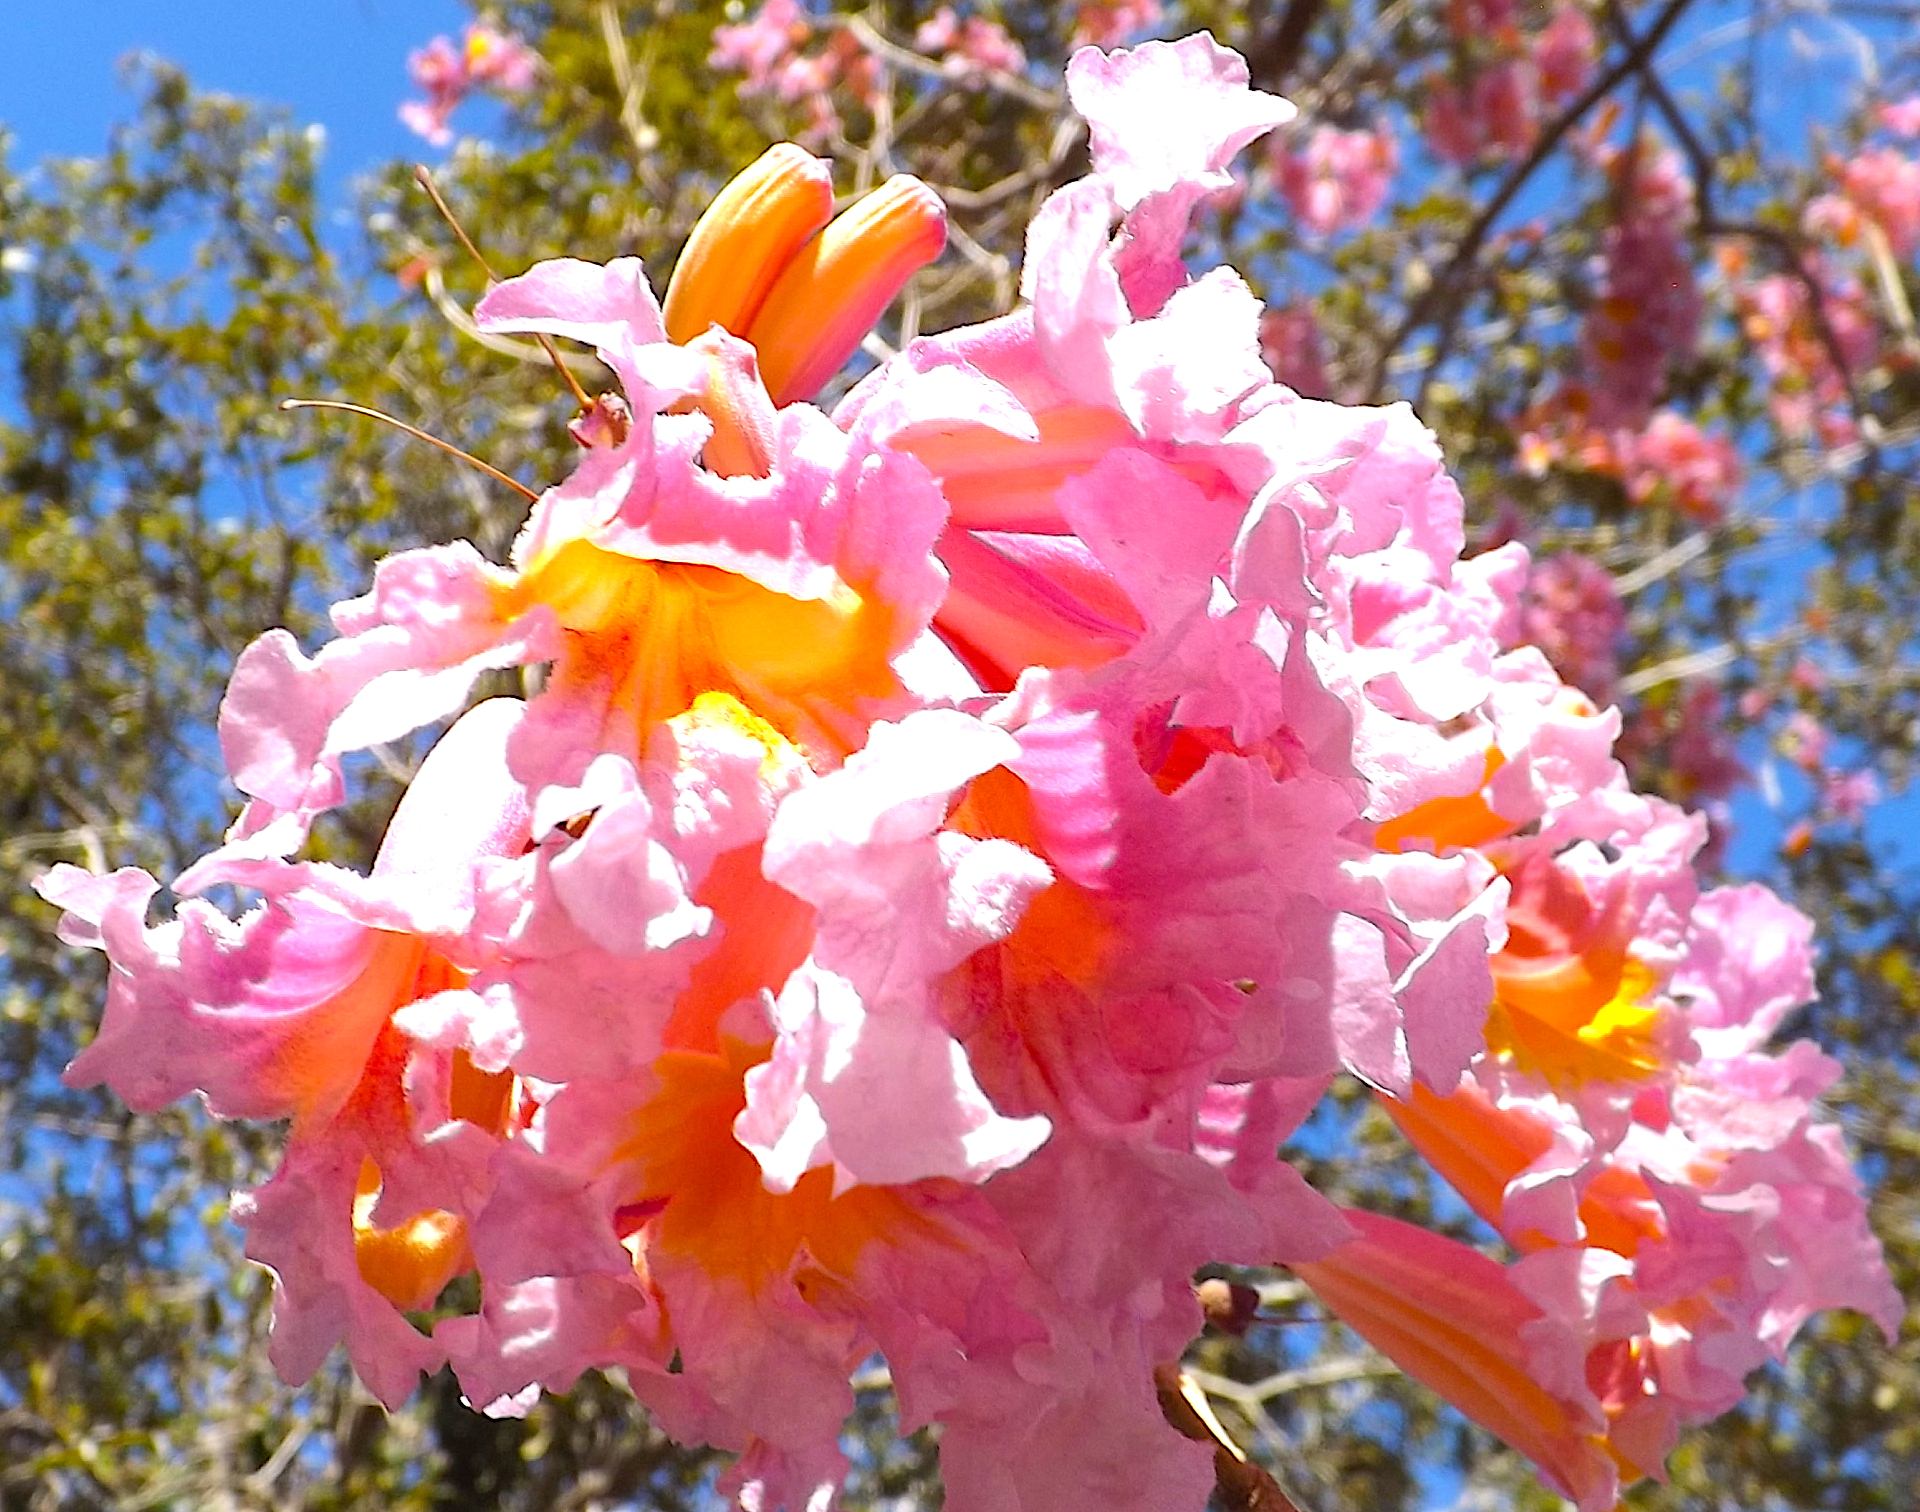 =======PINK AND YELLOW TREE FLOWERS CLOSE=========================================================================================================================================================PINK AND YELLOW TREE FLOWERS CLOSE